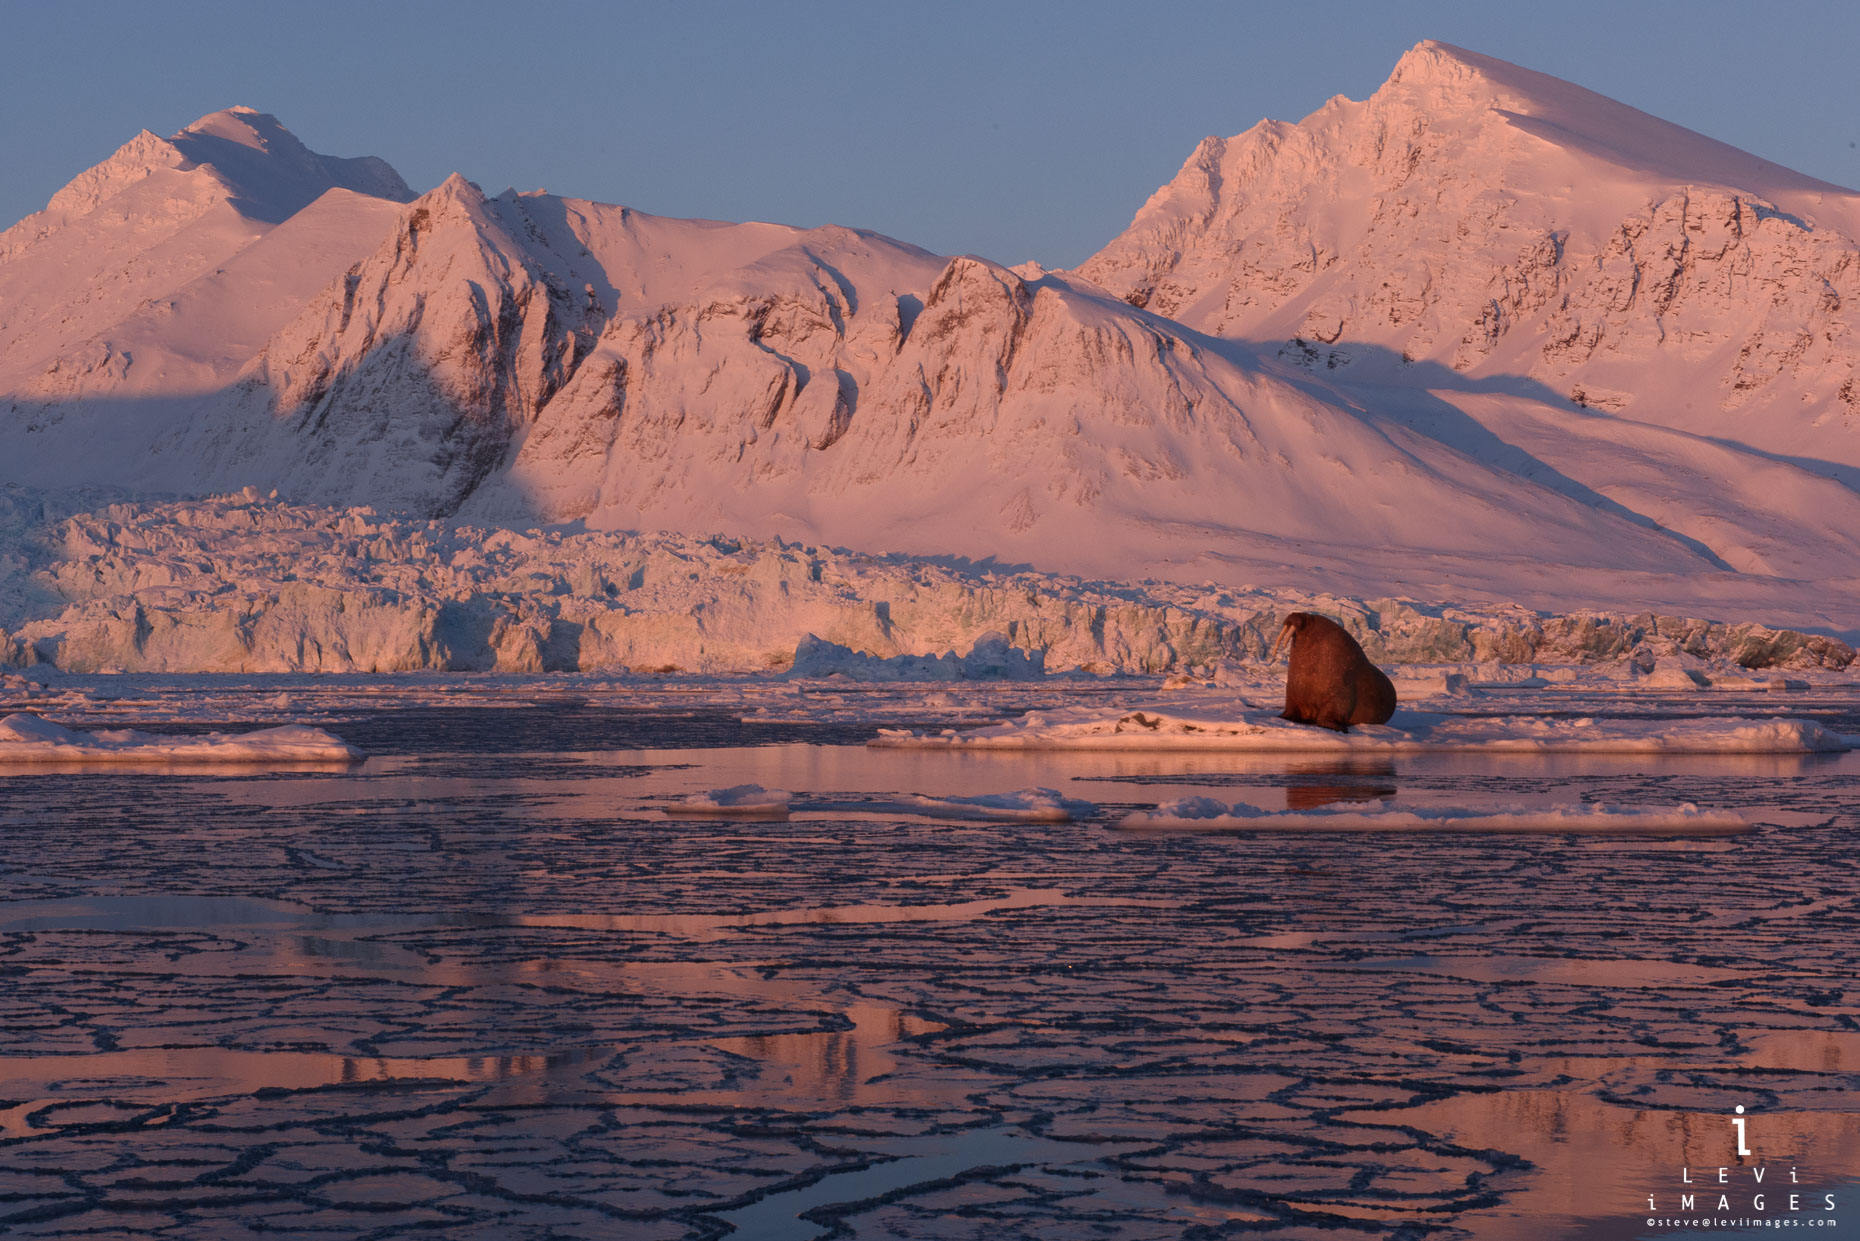 Walrus (Odobenus rosmarus) in glacial fjord at sunset Svalbard Norway